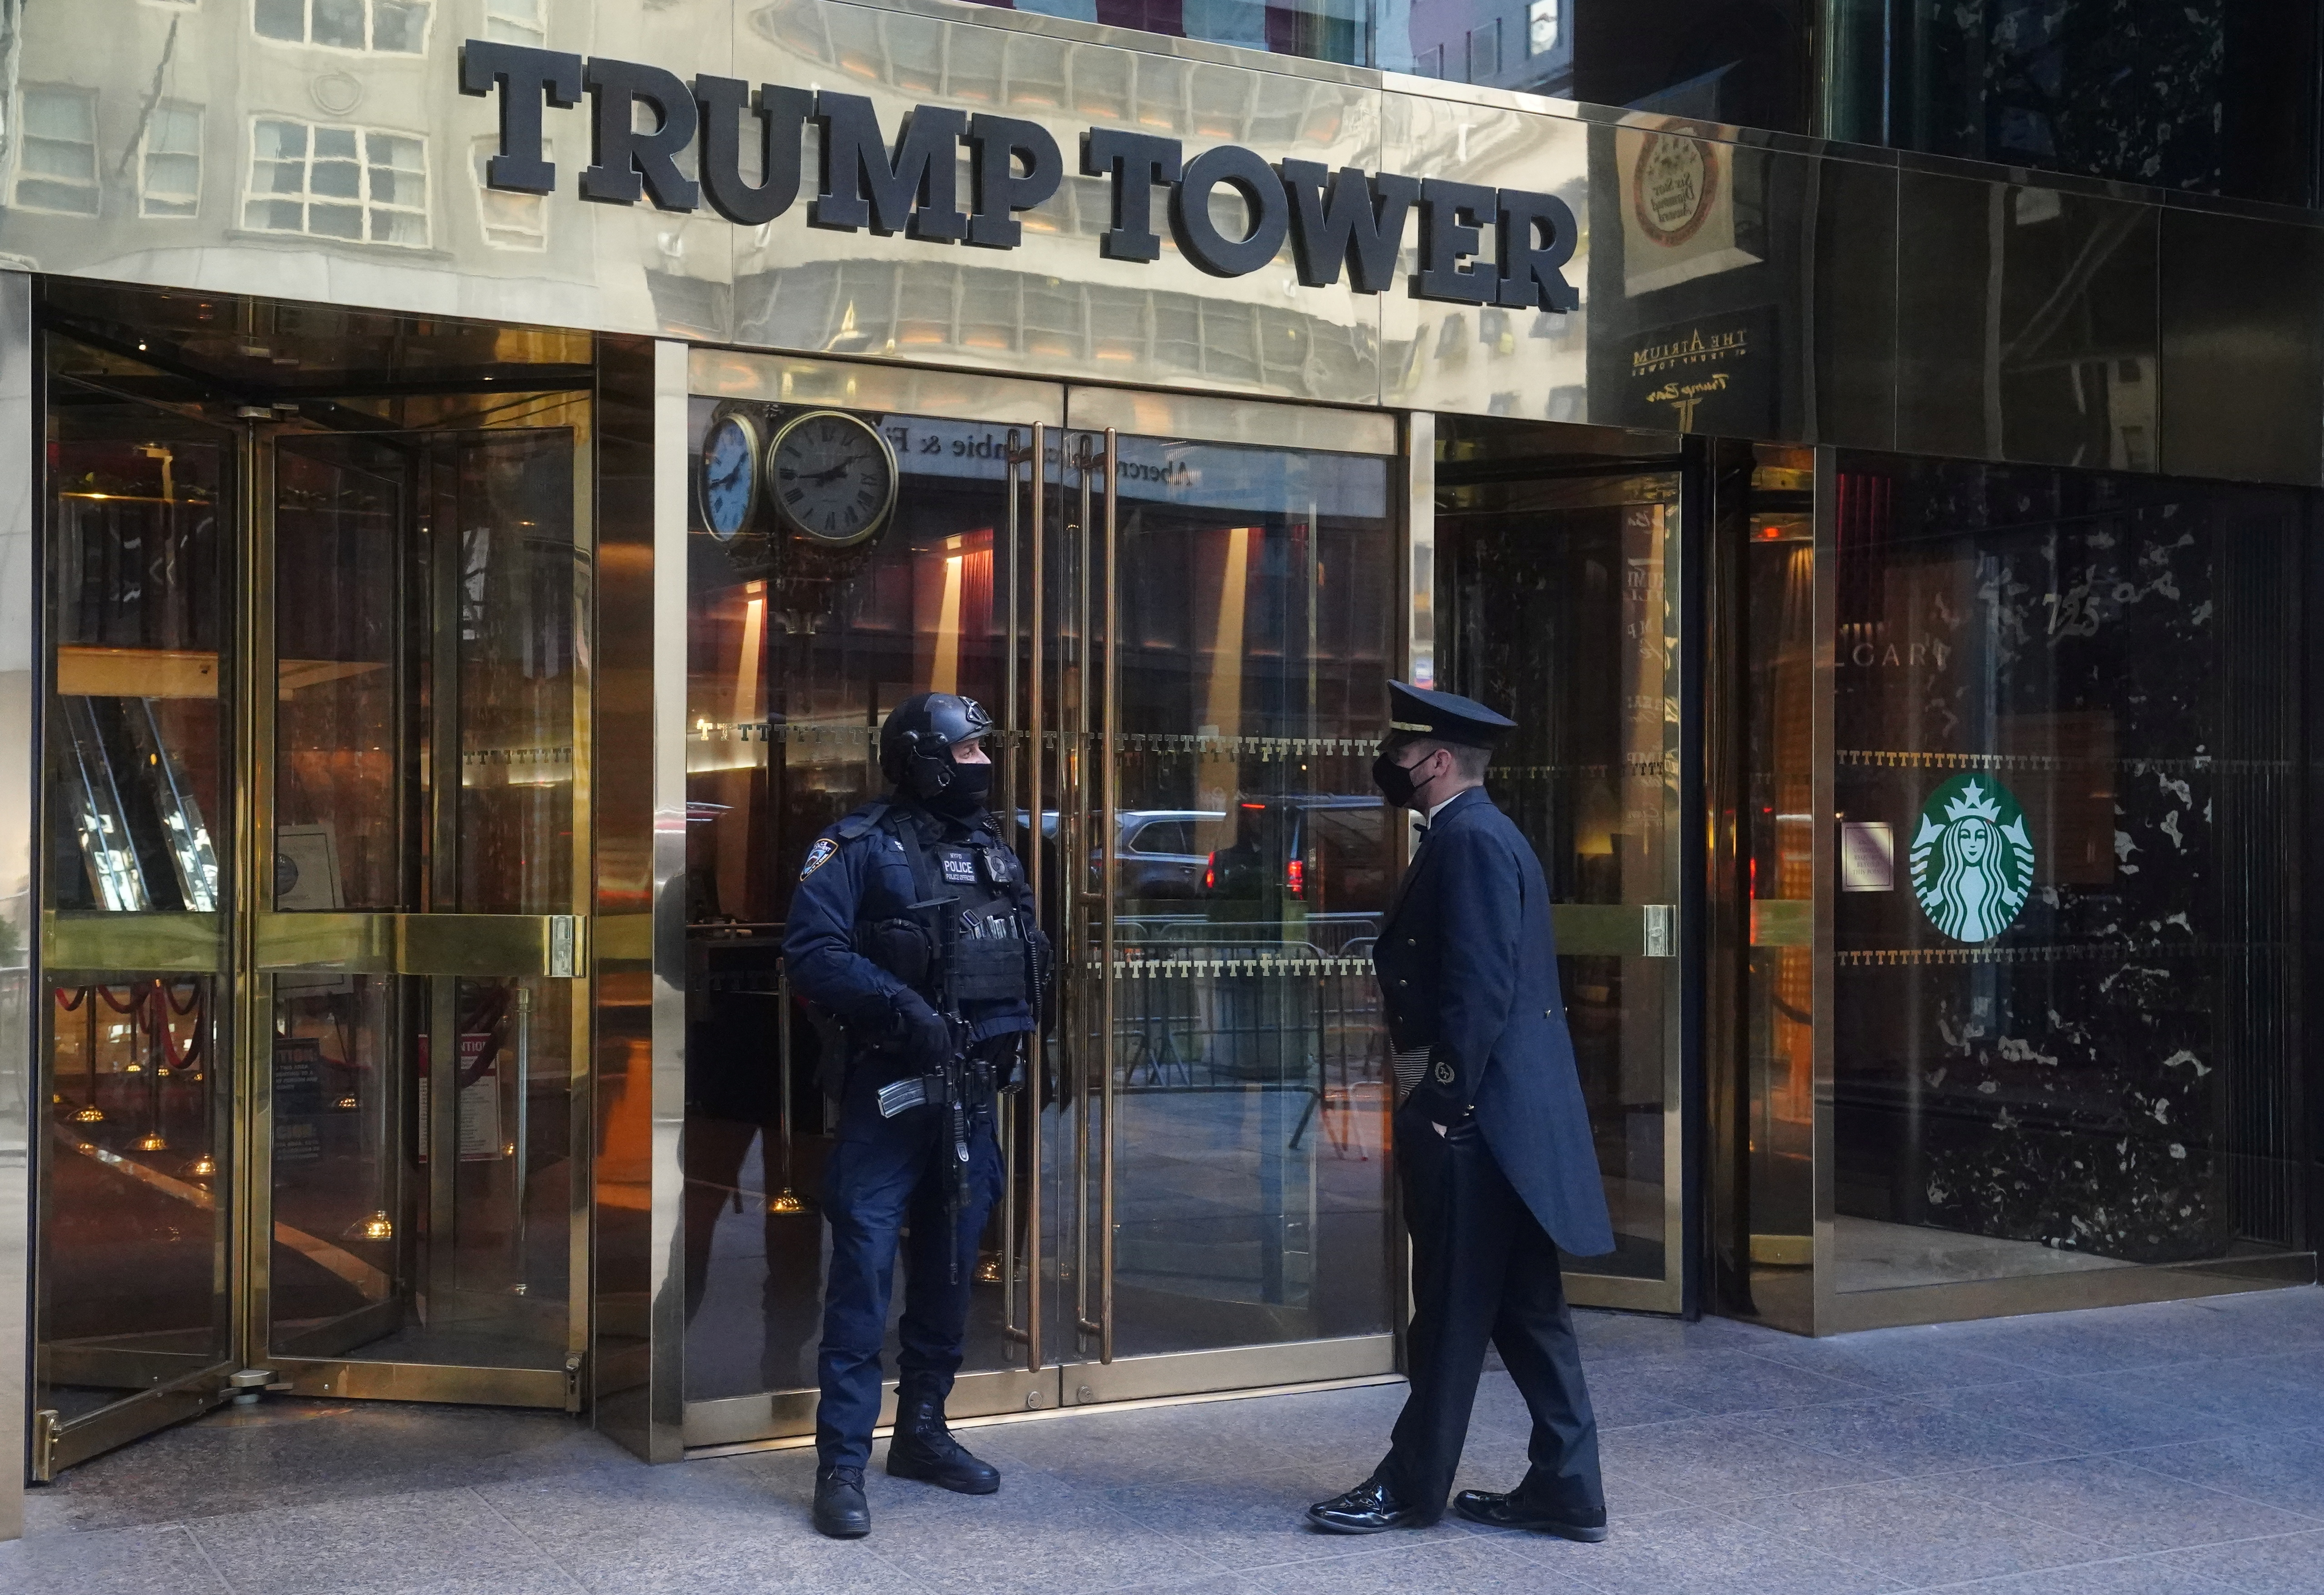 Trump Tower entrance is pictured amid the coronavirus disease (COVID-19) pandemic in the Manhattan borough of New York City, New York, U.S., January 20, 2021. REUTERS/Carlo Allegri